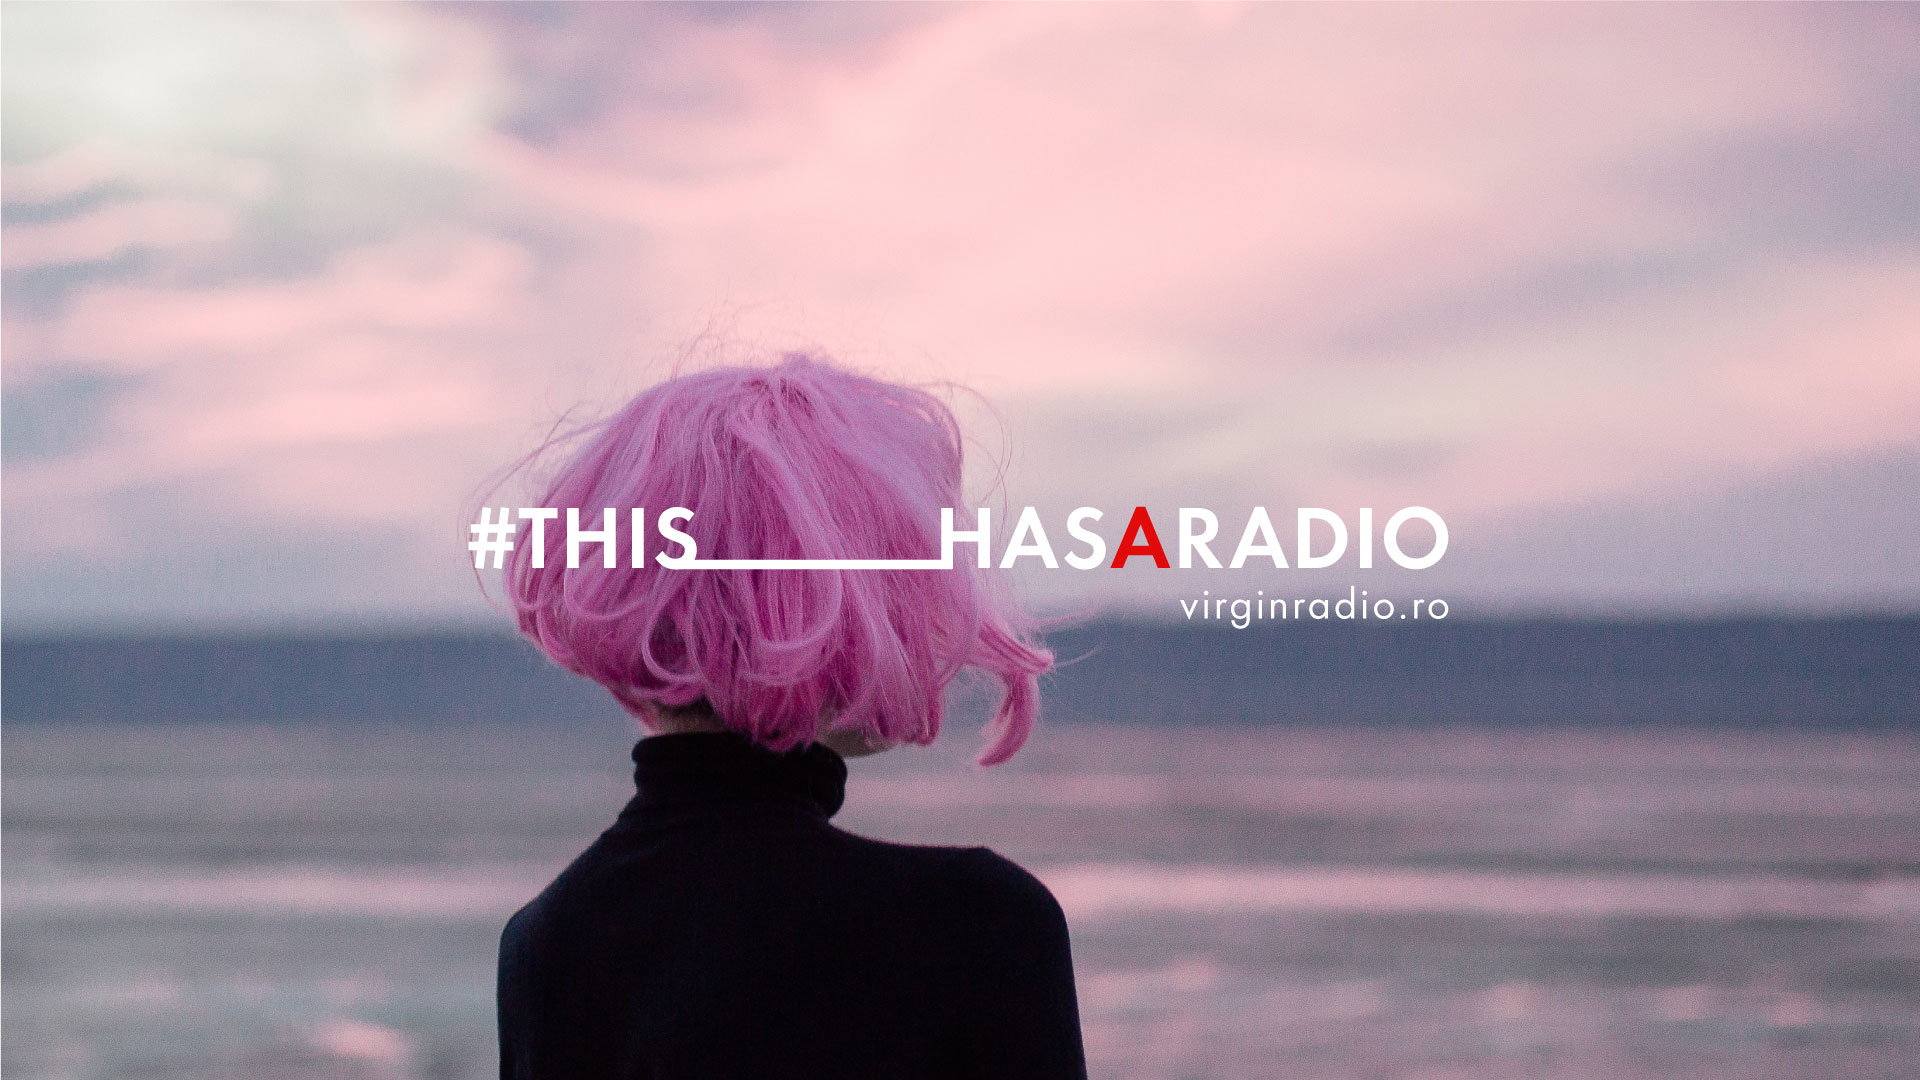 Virgin Radio: #thishasaradio